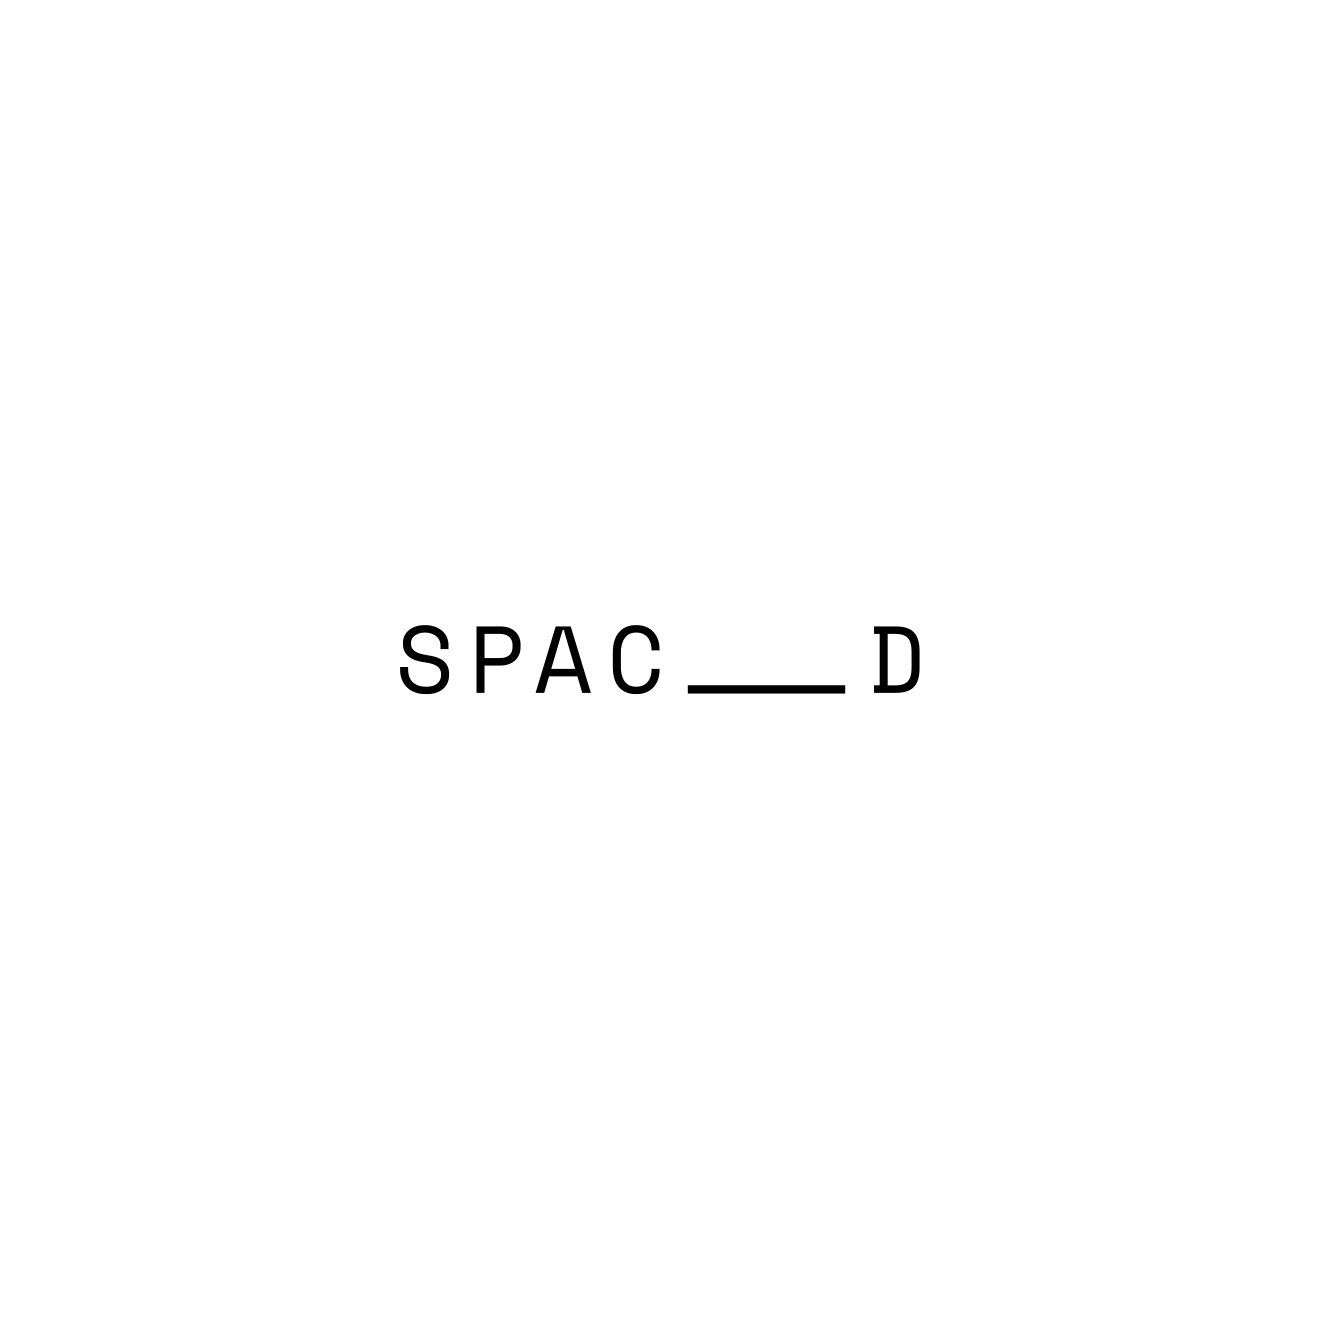 logo-spaced